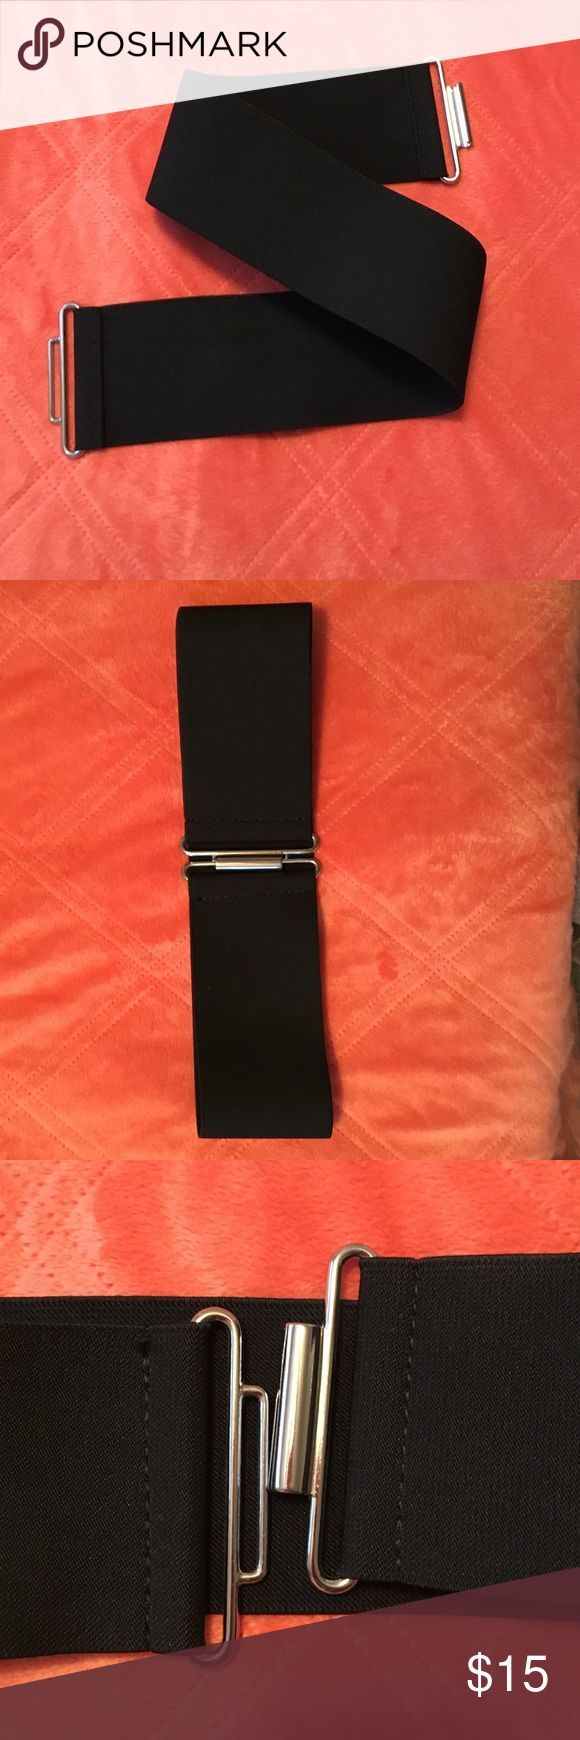 """Wide, black stretch belt Wide, black stretch belt from express. Like new. Great accessory. 24.5"""" with a good amount of stretch. Express Accessories Belts"""